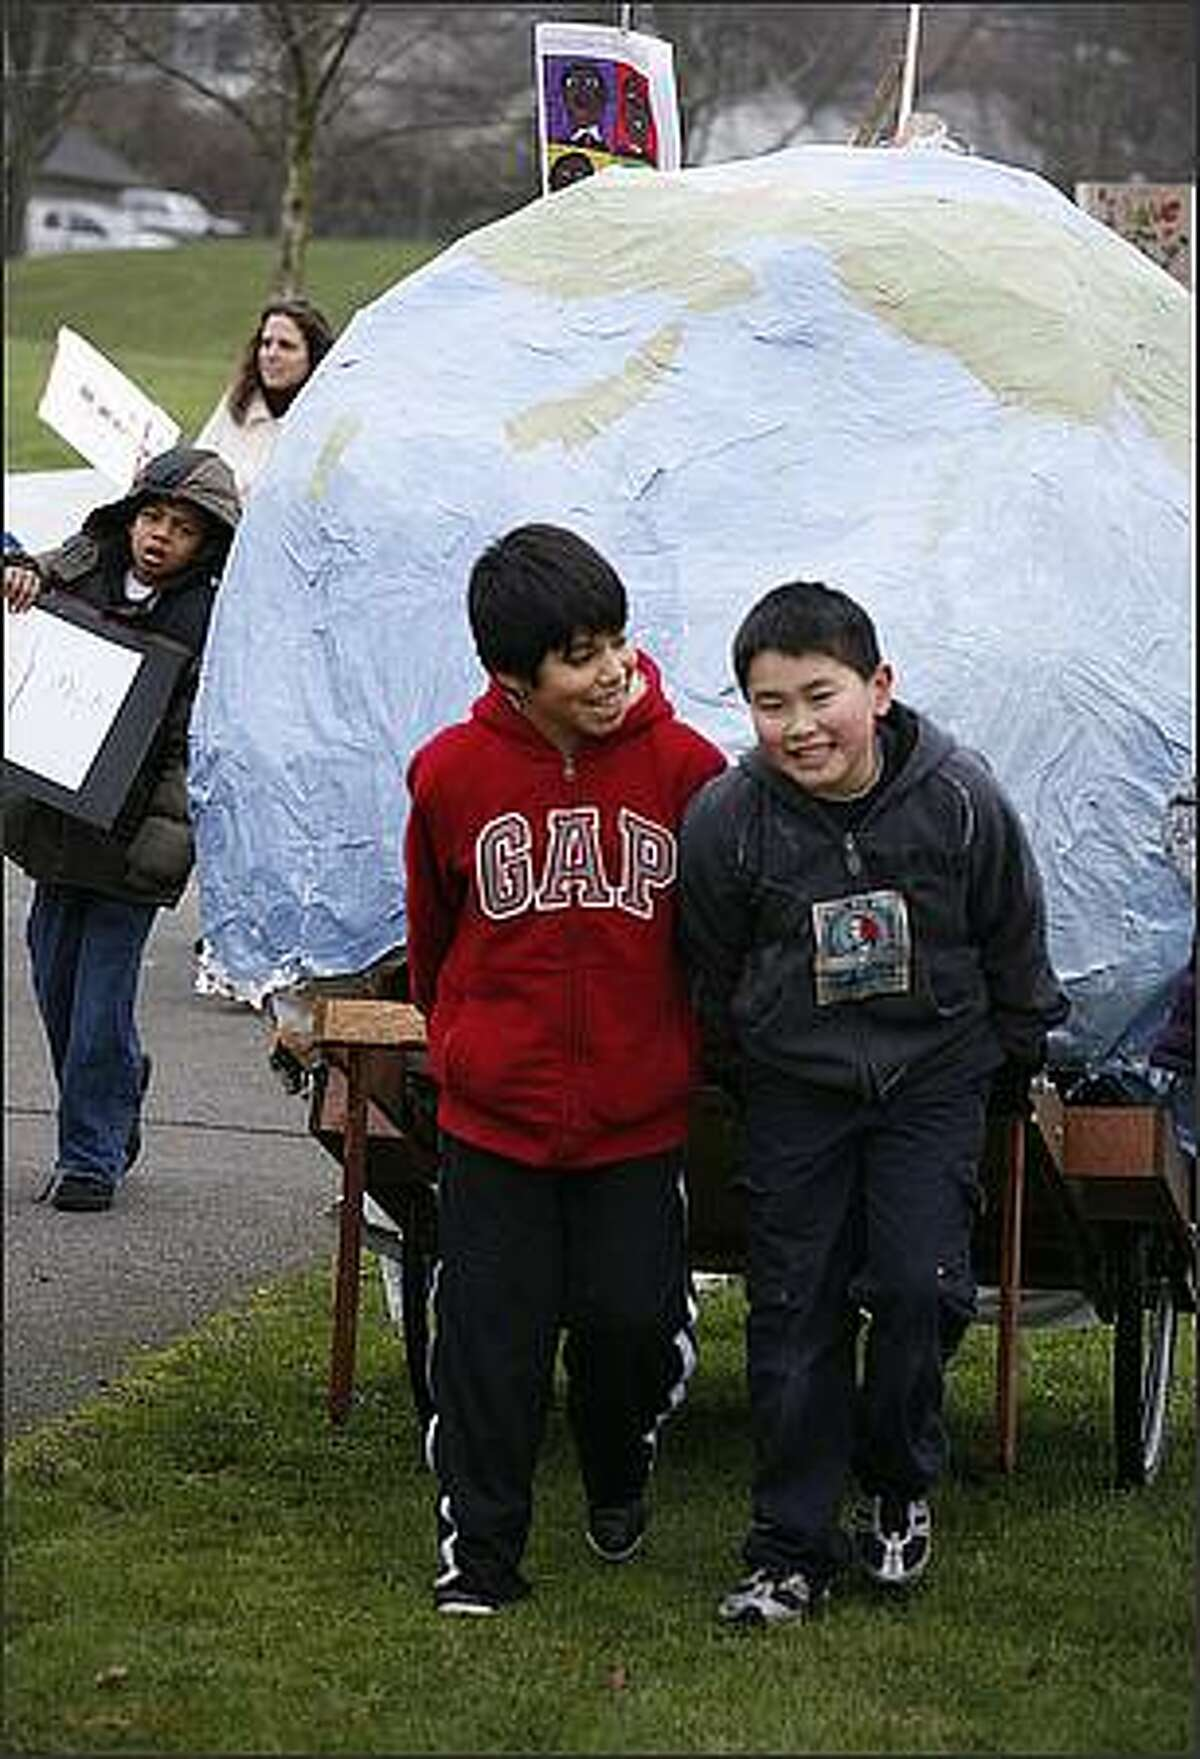 Giddens School classmates Matias Lazlo-Fanning, 10, and his buddy Alex Ono, 10, pulled a cart carrying a huge paper mache globe.